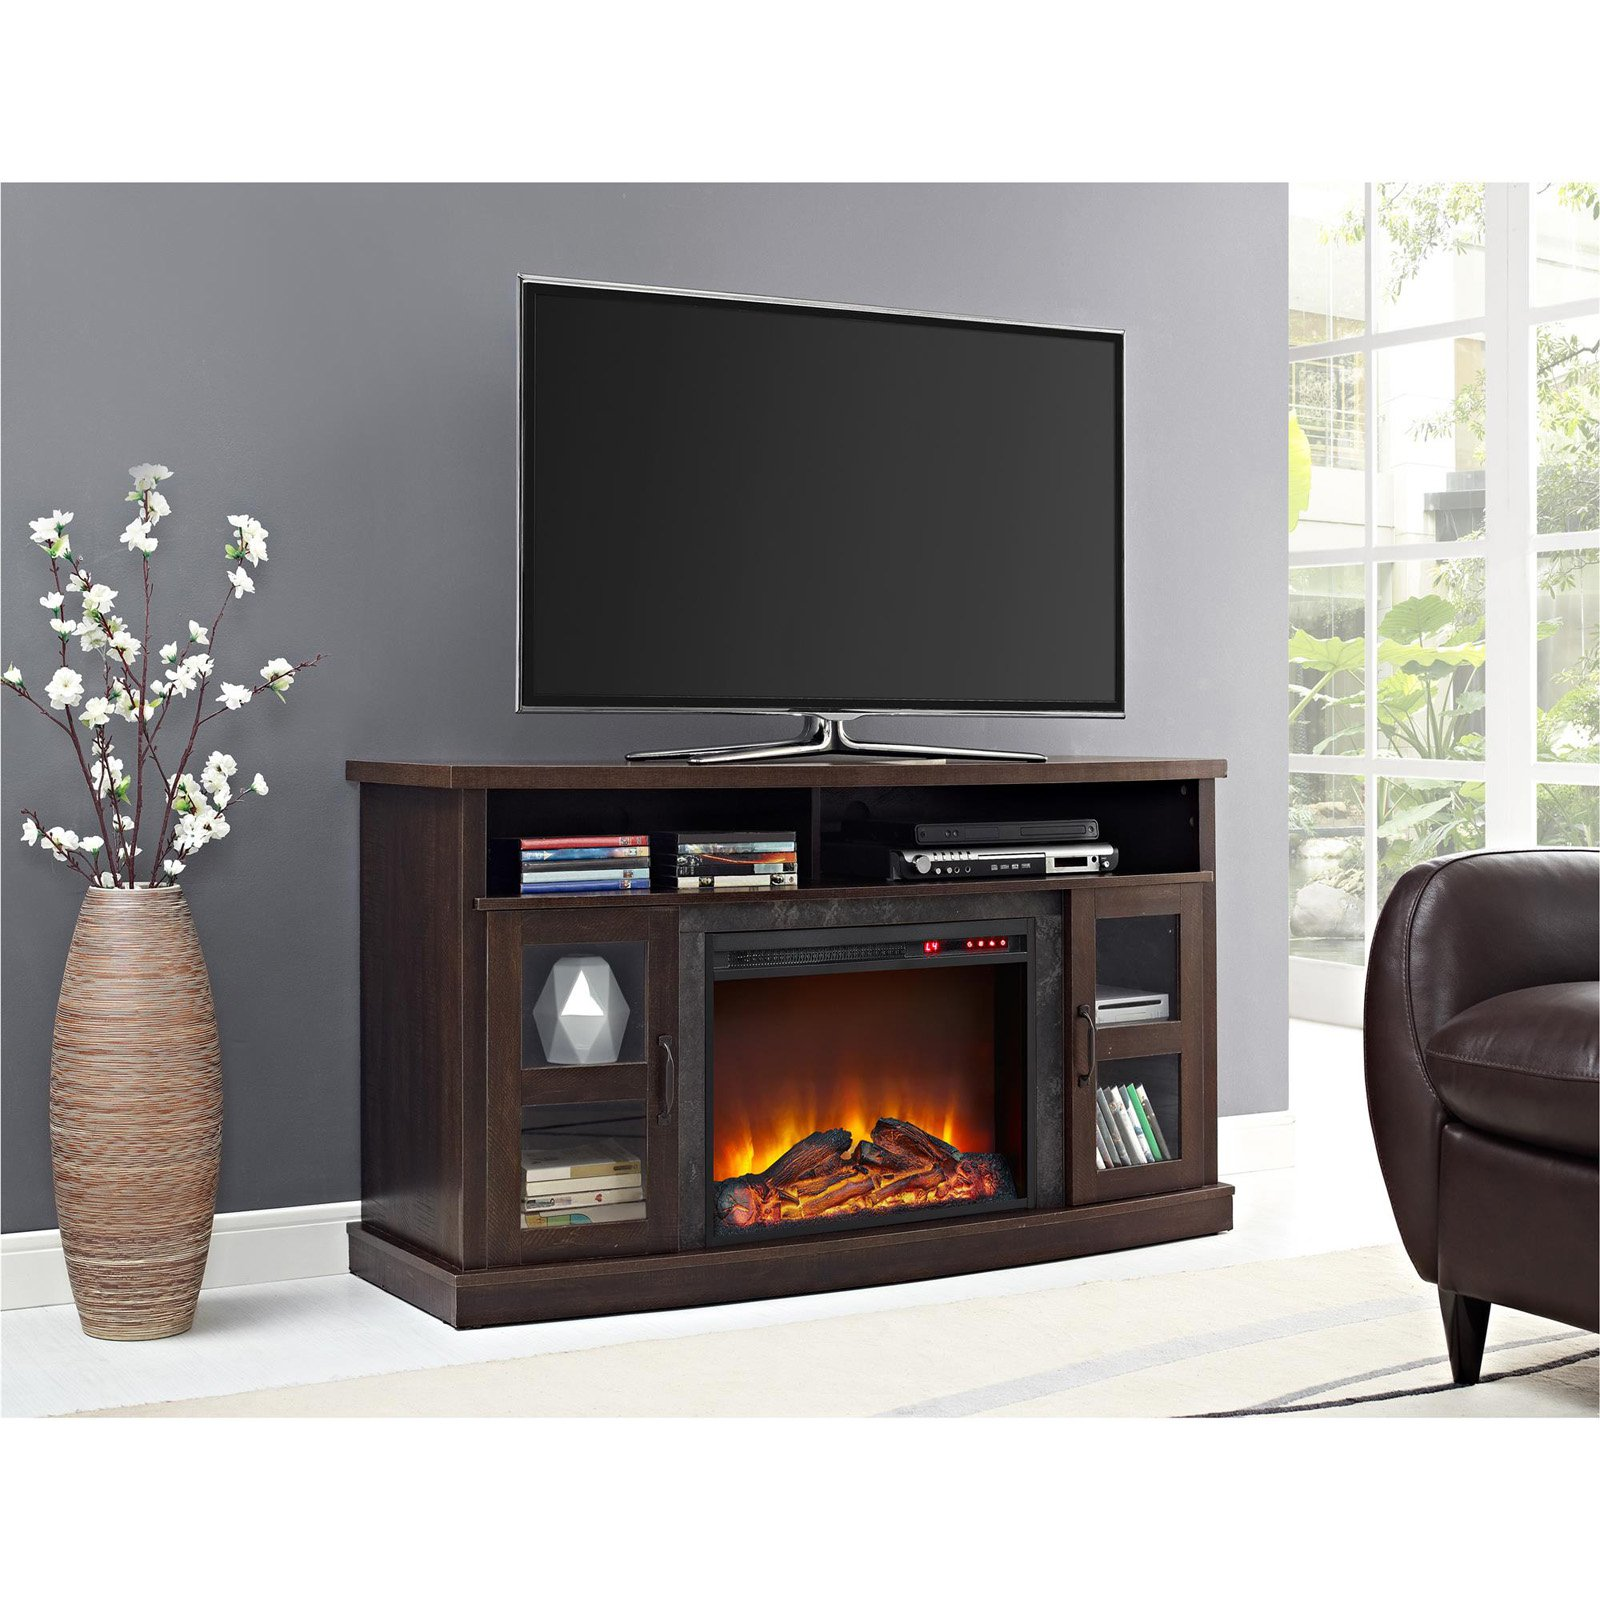 Ameriwood Home Barrow Creek Fireplace Console with Glass Doors for TVs up to 60""